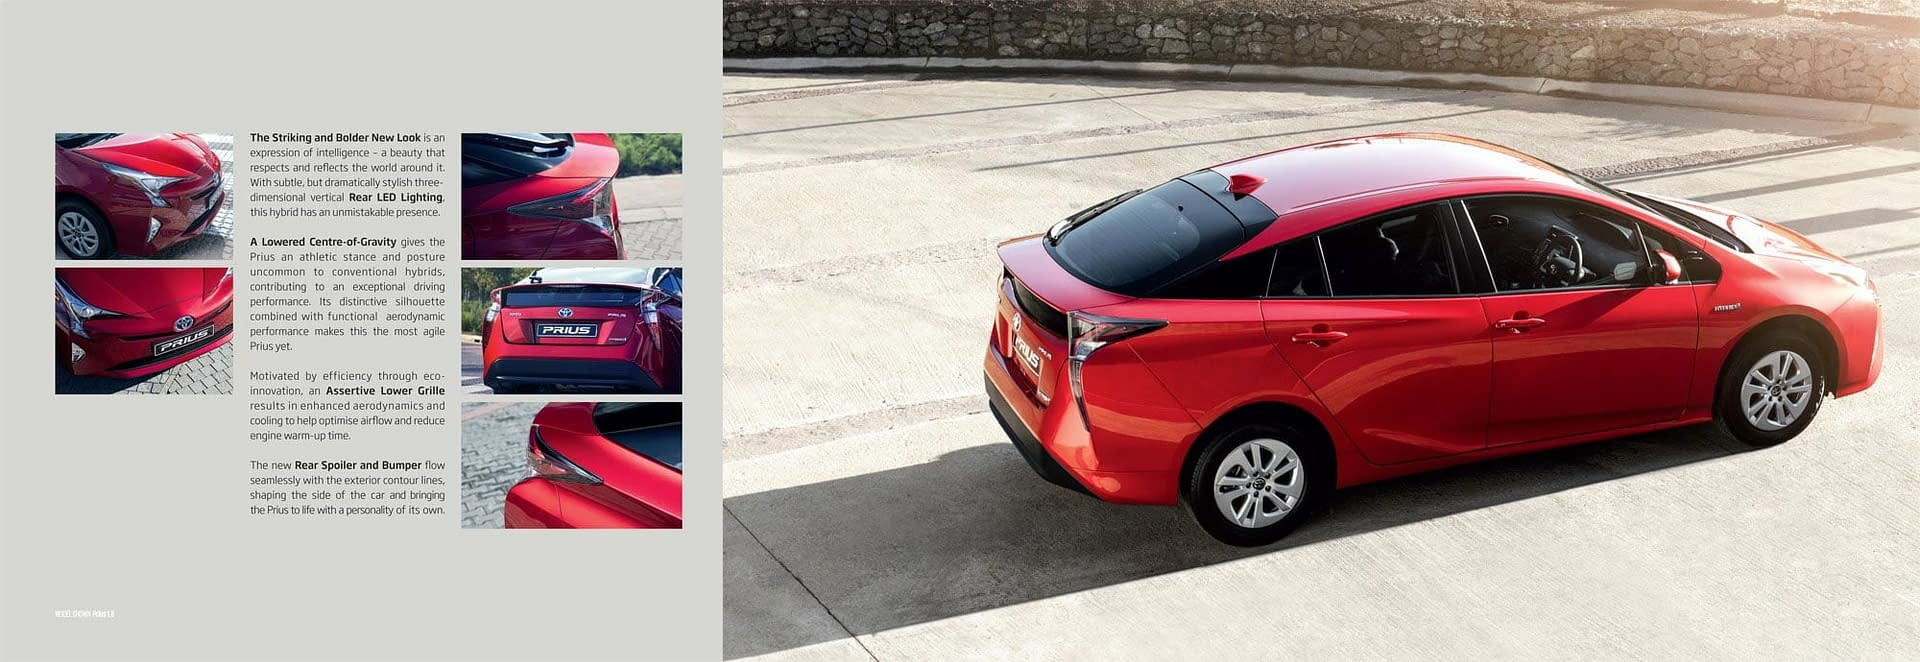 all new toyota prius photographed on location at the Soweto theatre using natural lighting